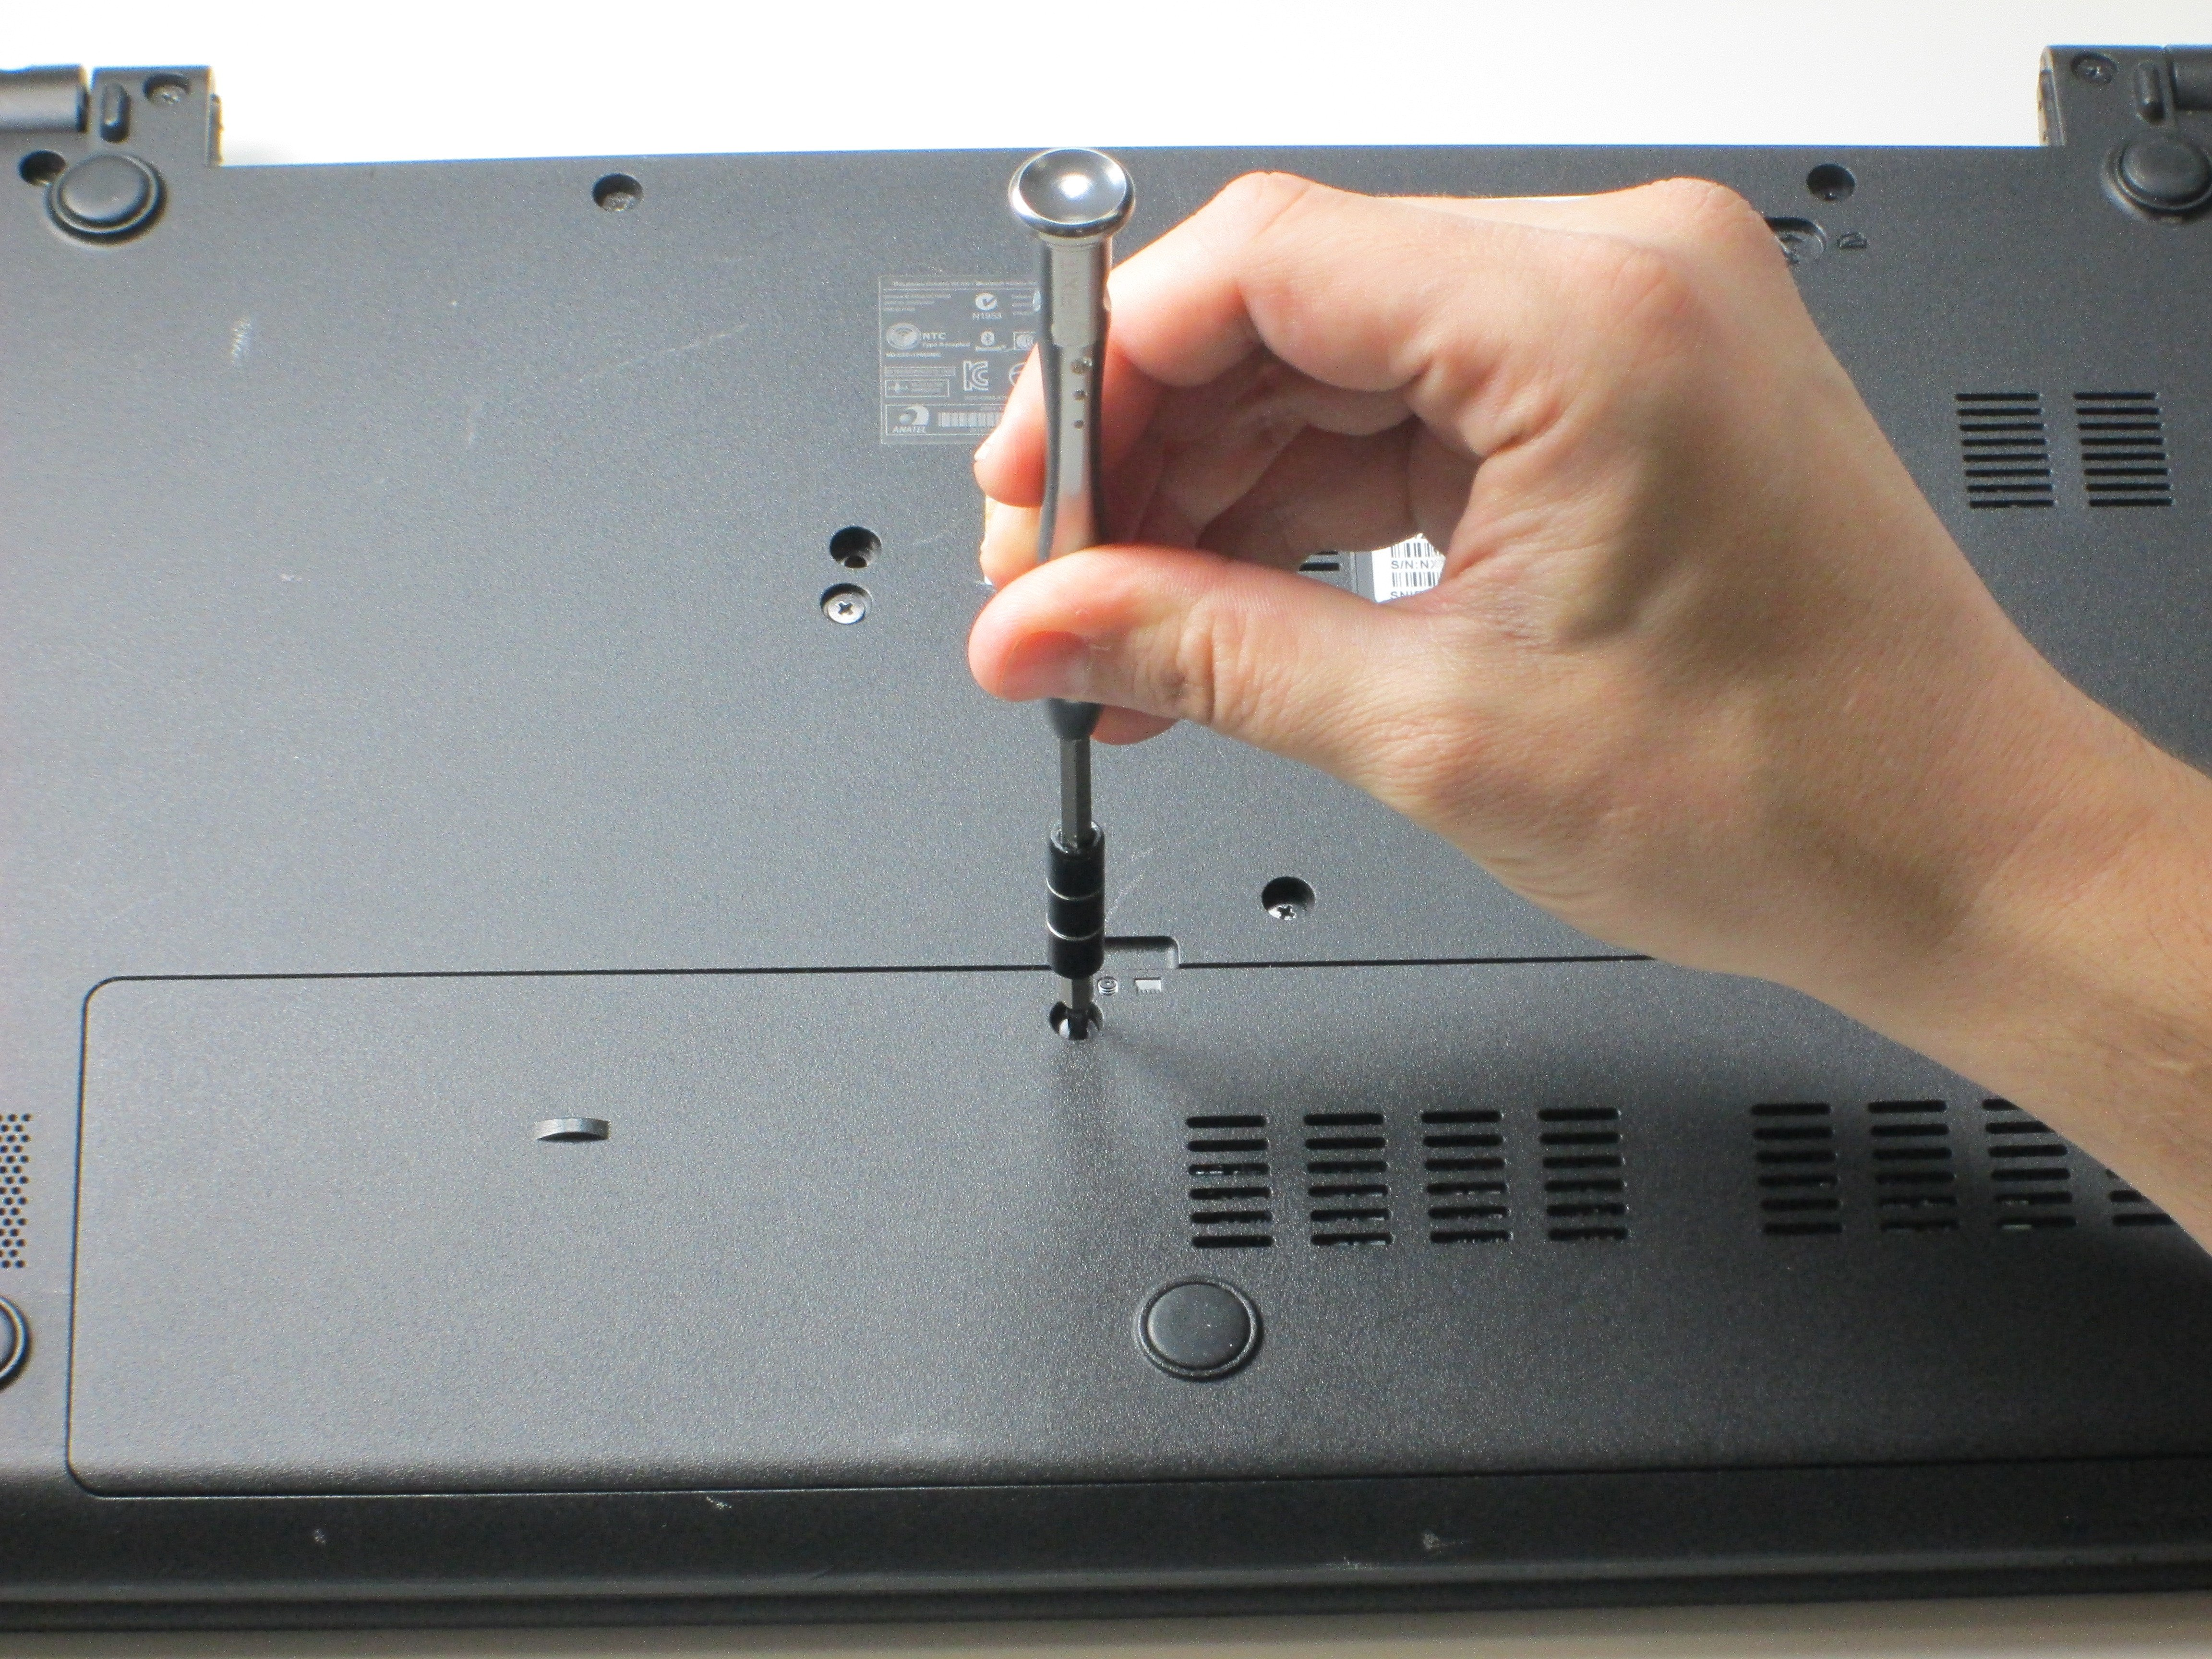 ACER Aspire E1-572-6870 Back Panel Disassembly - iFixit Repair Guide